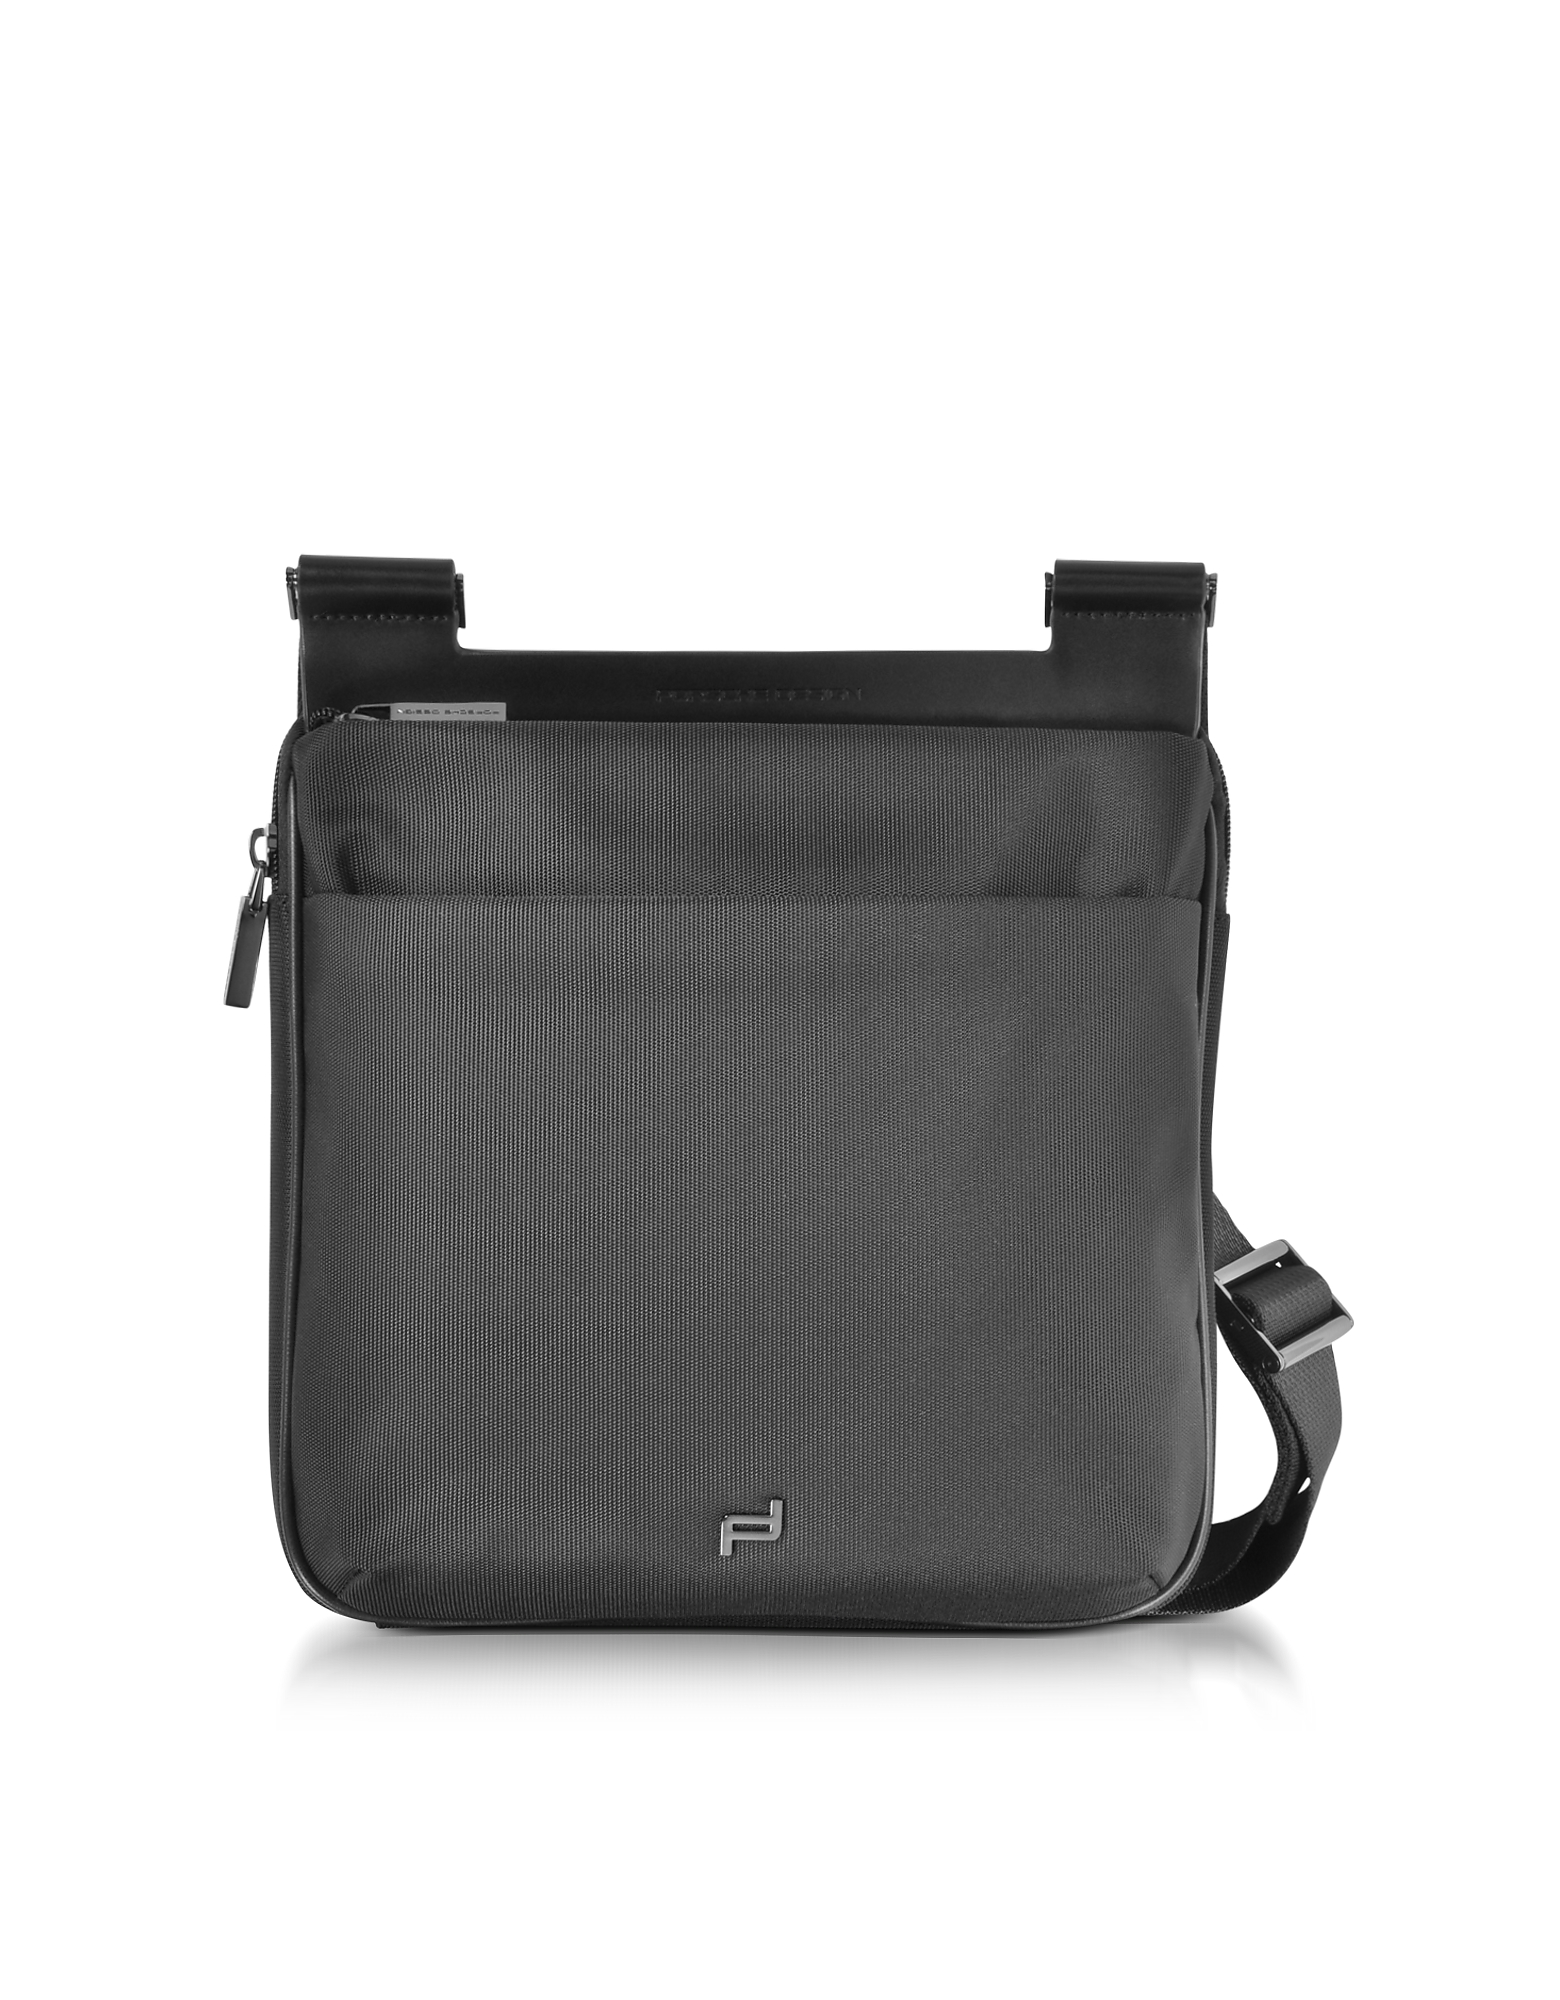 Porsche Design Travel Bags, M2 Black Shyrt Nylon Crossbody Bag